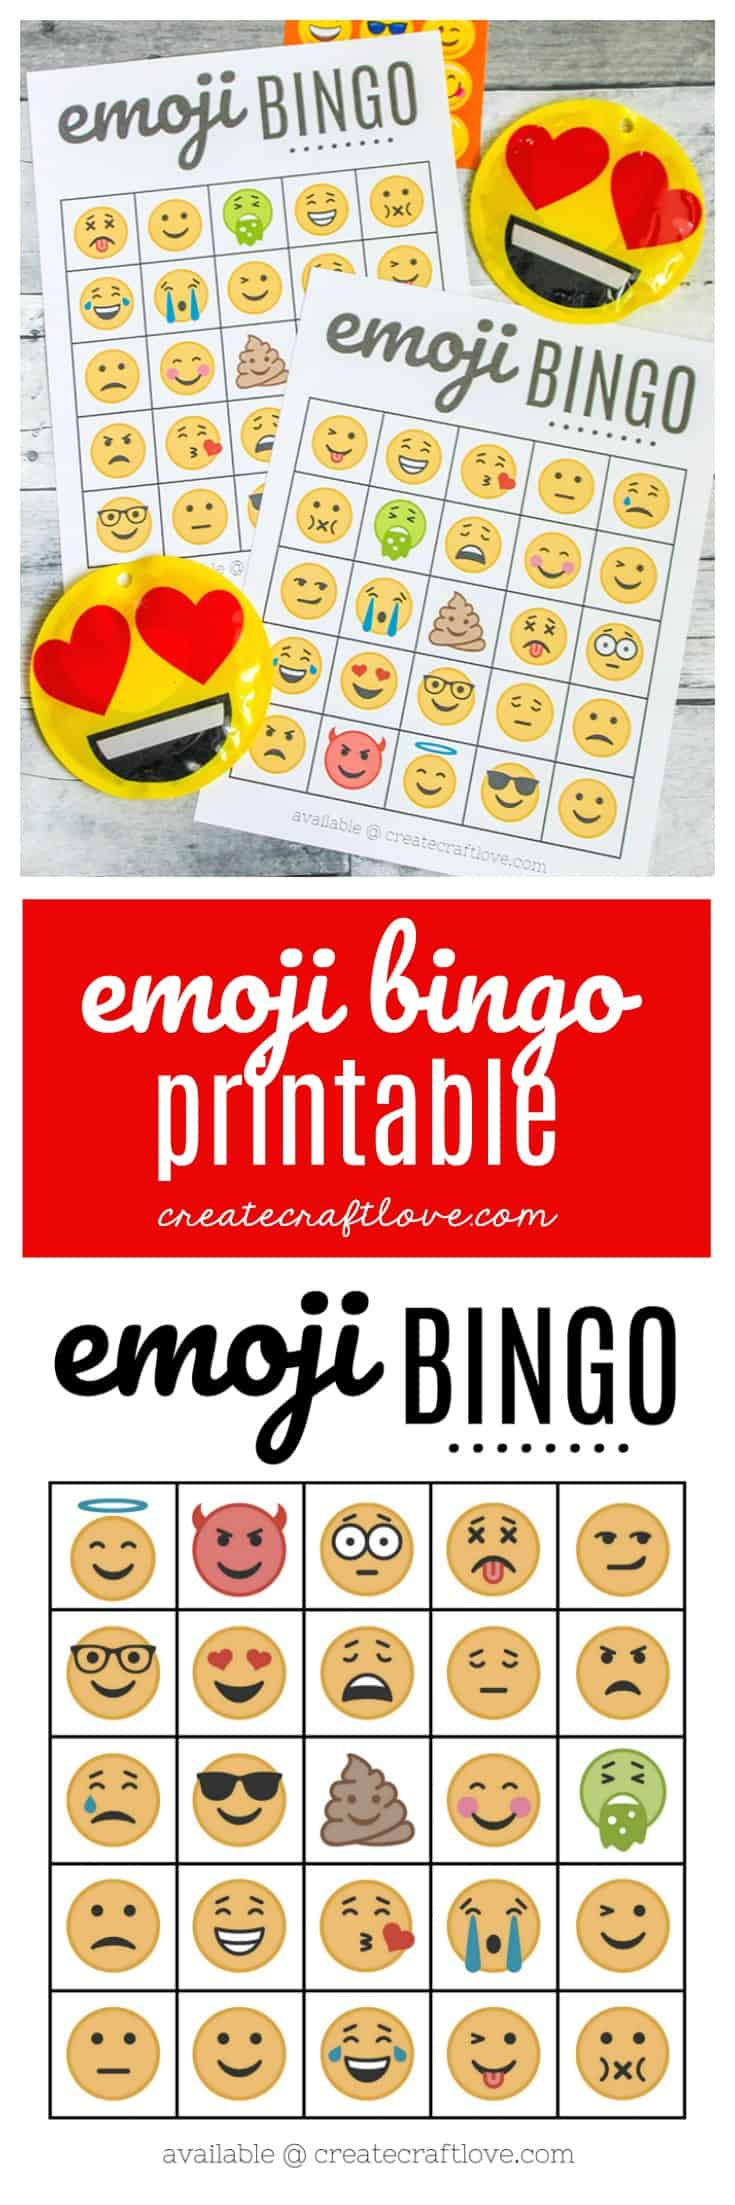 Who doesn't love emojis?  Grab your FREE Emoji Bingo Printable HERE and let the fun begin!